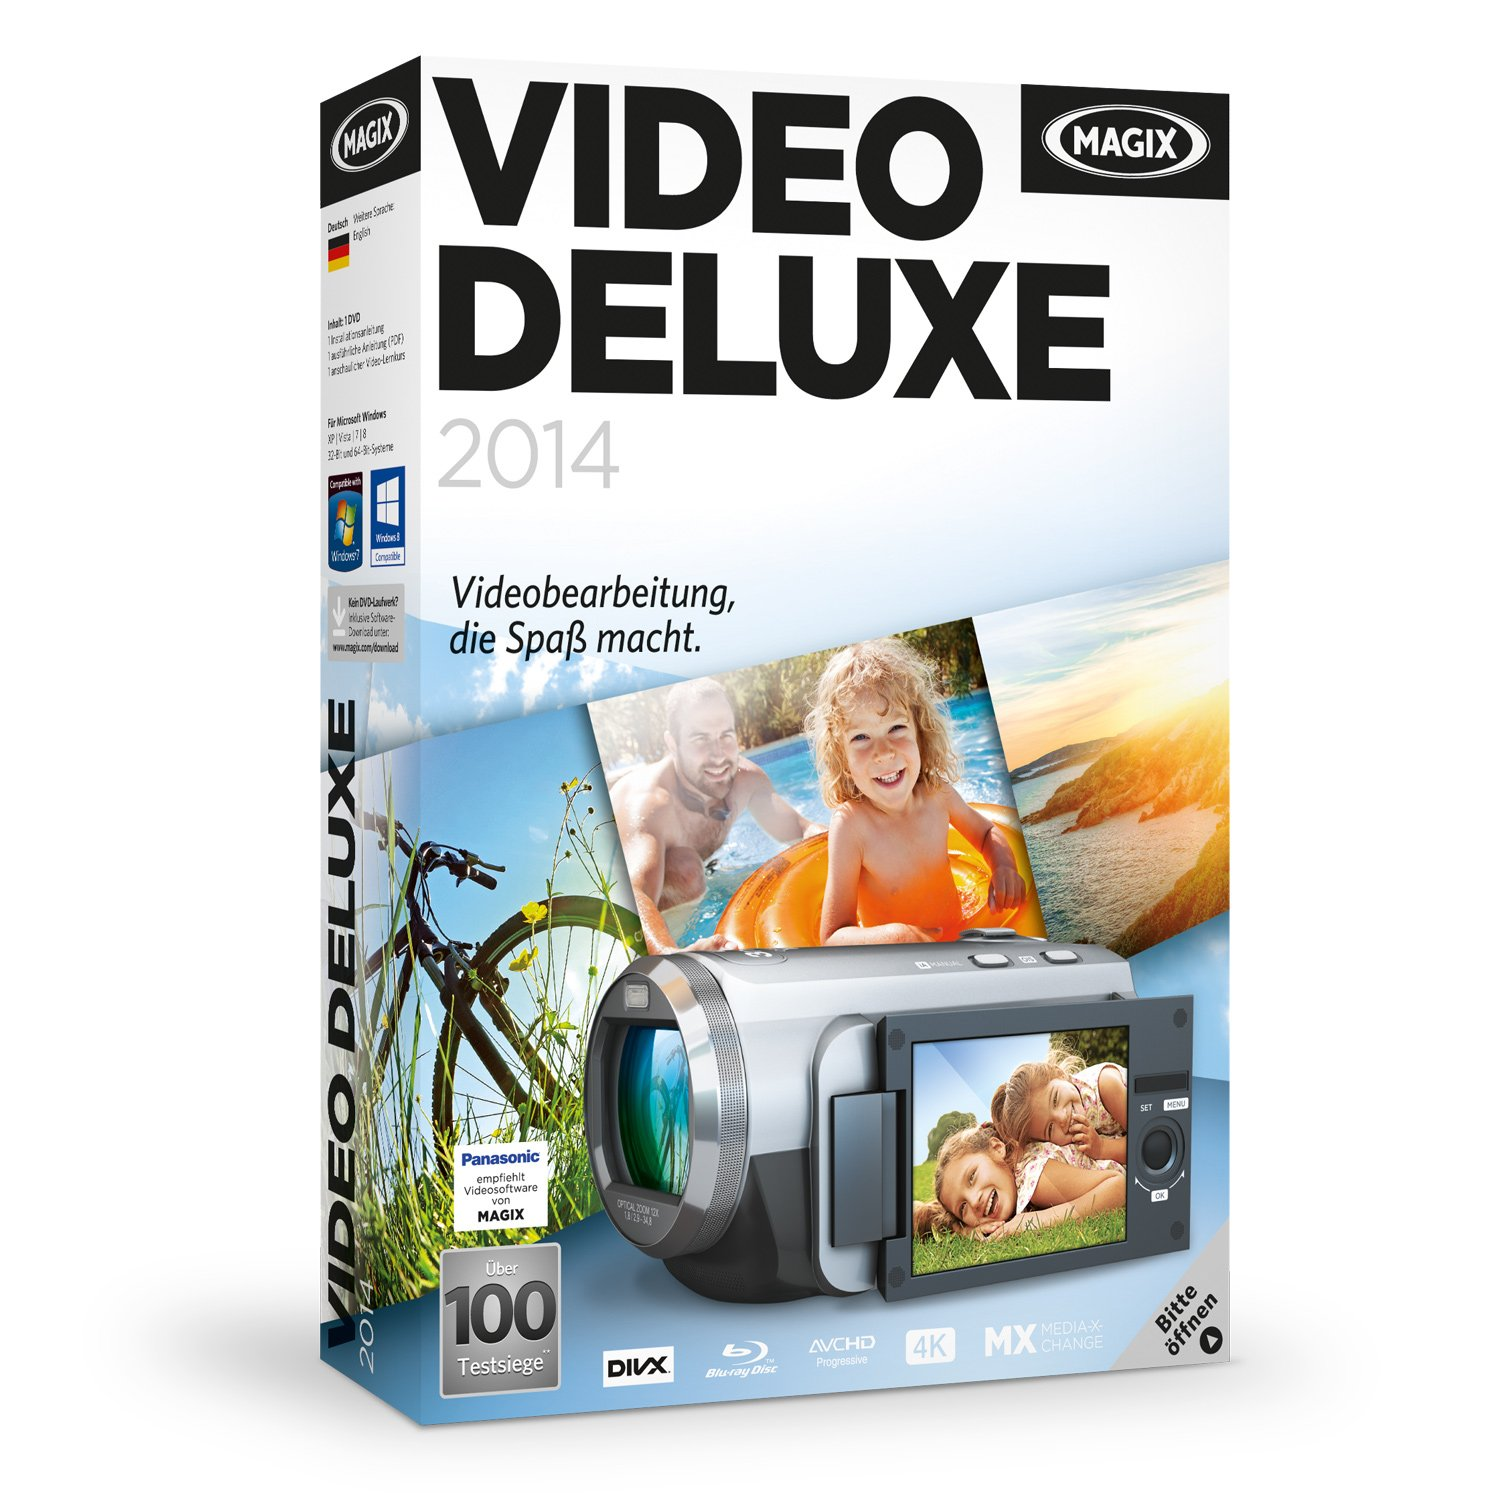 MAGIX Video deluxe 2014 Amazon Software